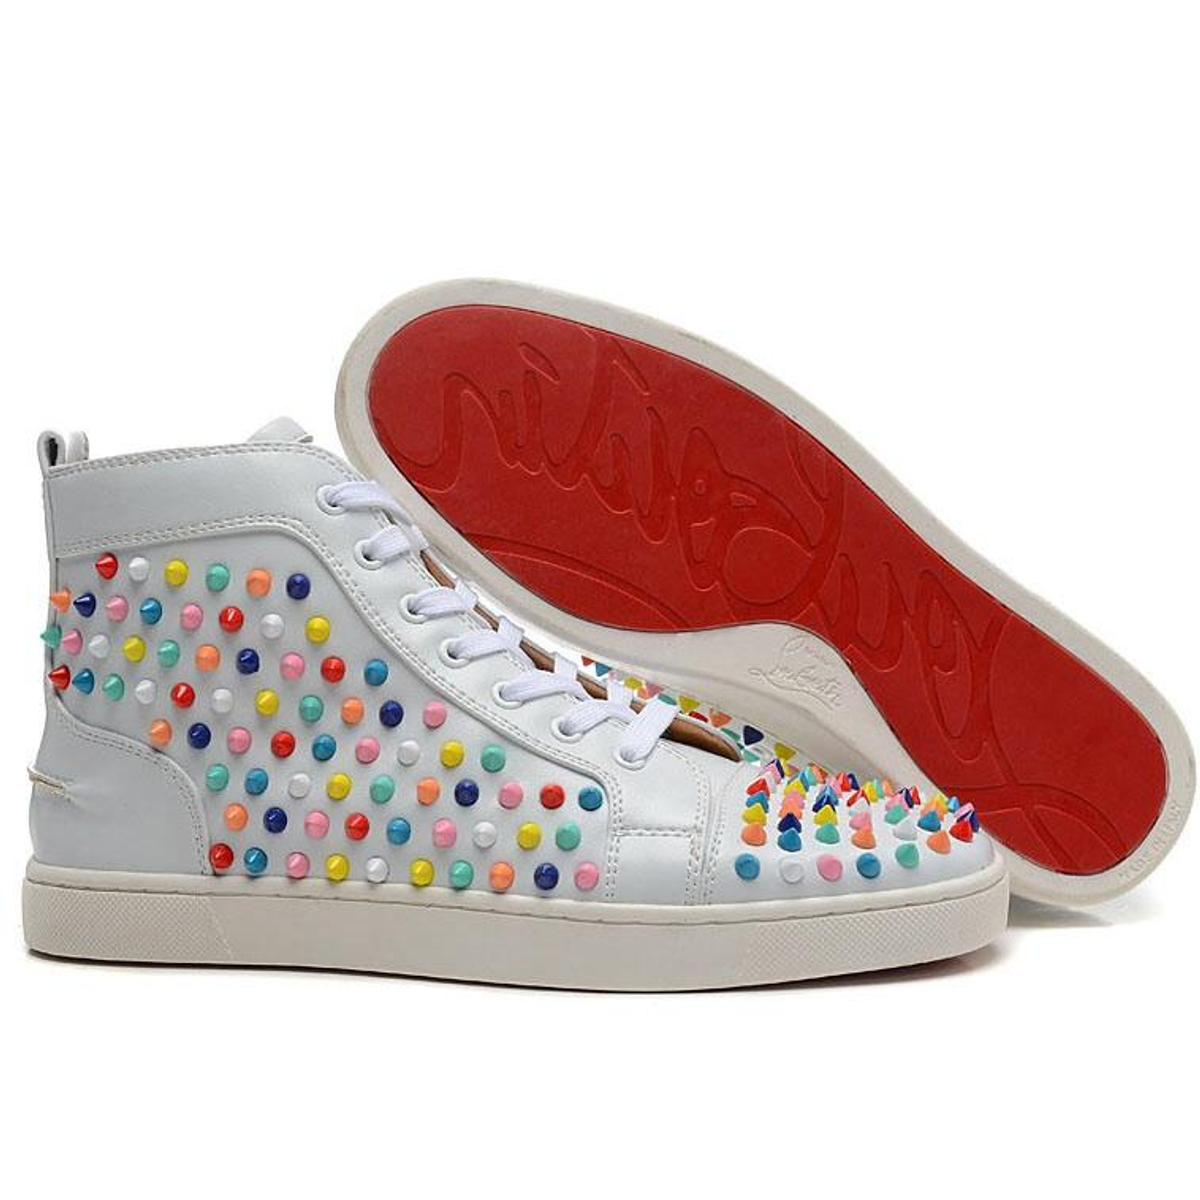 cheap for discount 1c11f 90faf Red bottom sneakers in UB3 London for £150.00 for sale - Shpock